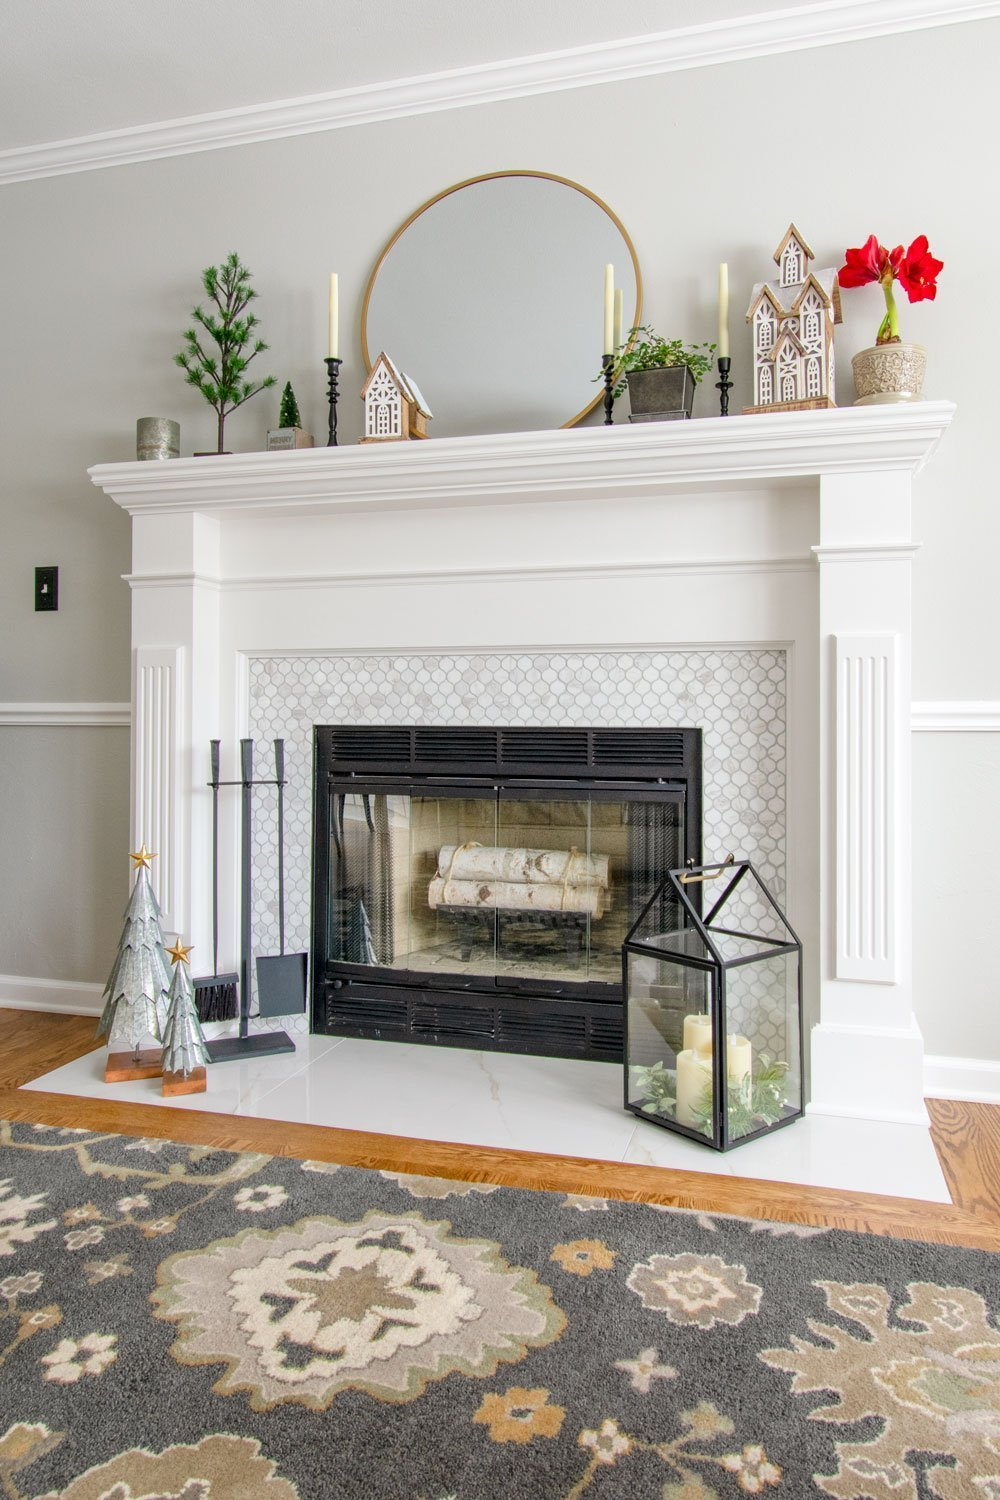 Classic Delafield kitchen and fireplace remodel